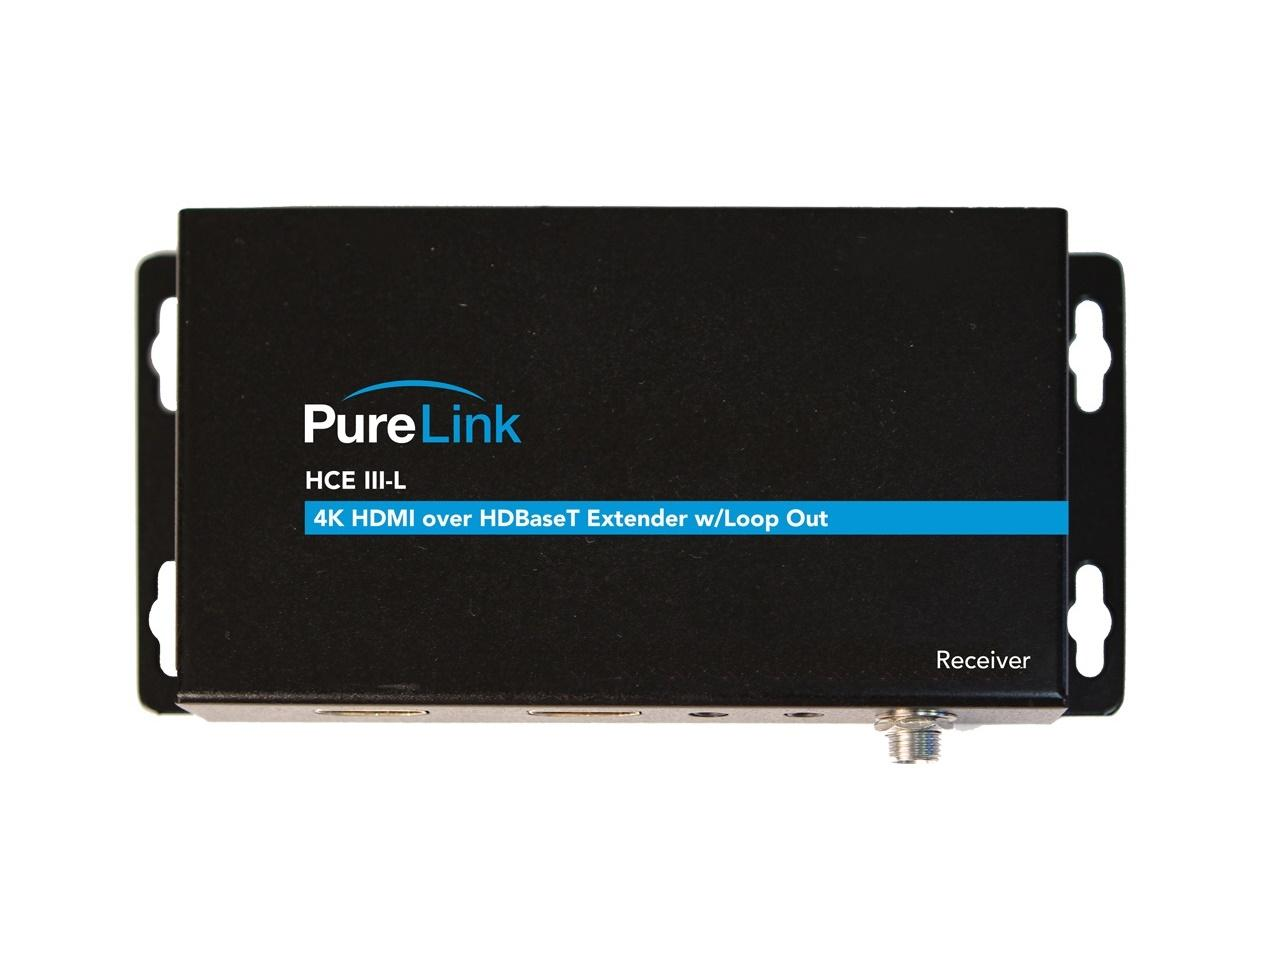 HCE III-L Rx HDTools 4K HDMI/HDR/IR and RS-232/Bi-directional PoE over HDBaseT Extender (Receiver) by PureLink